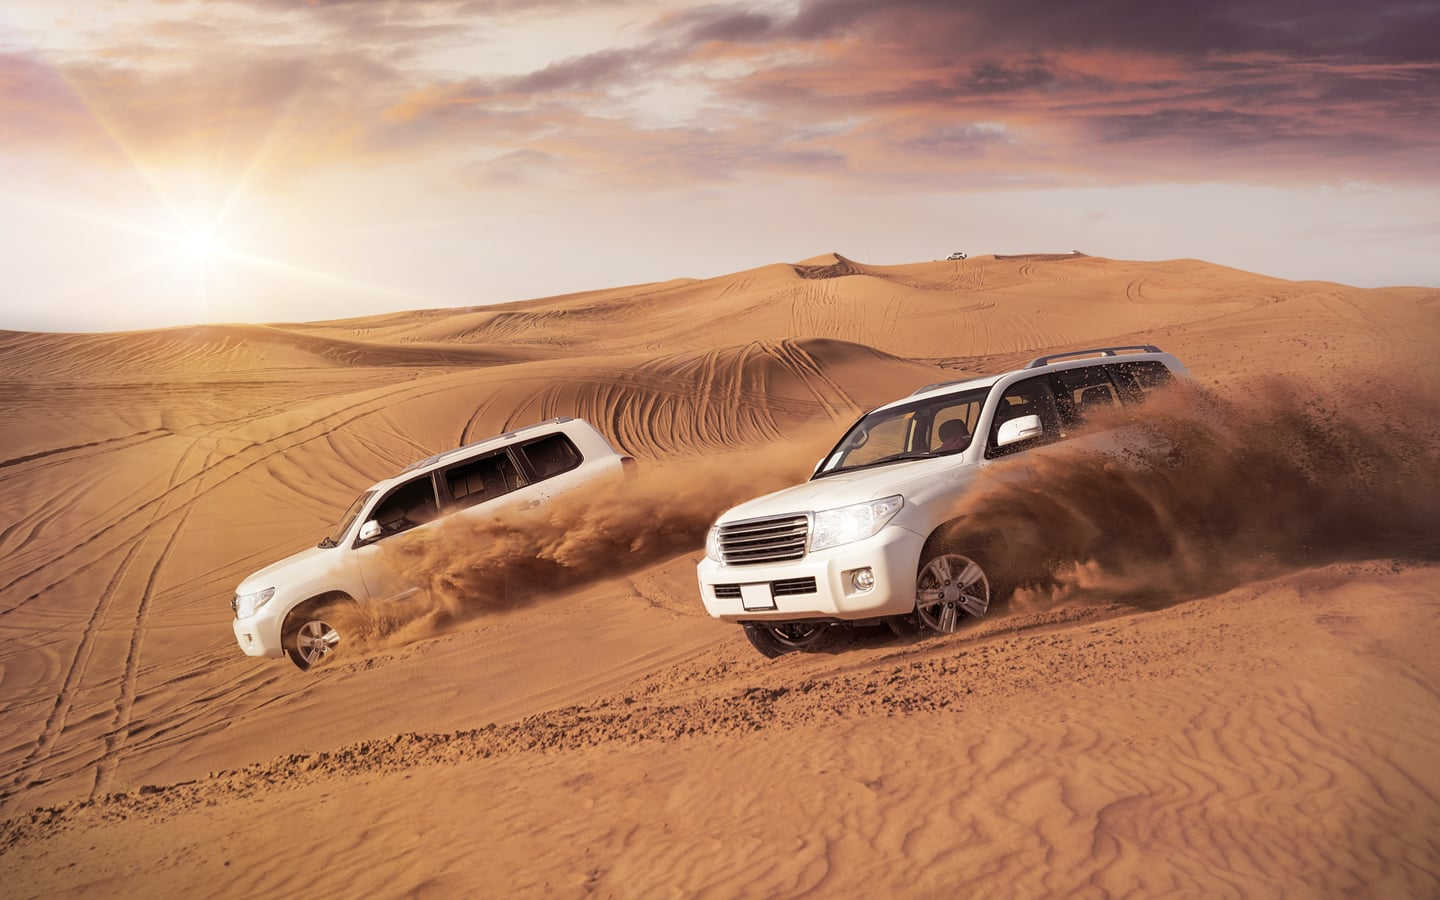 4X4 vehicles are ideal choices when it comes to desert camping in the UAE